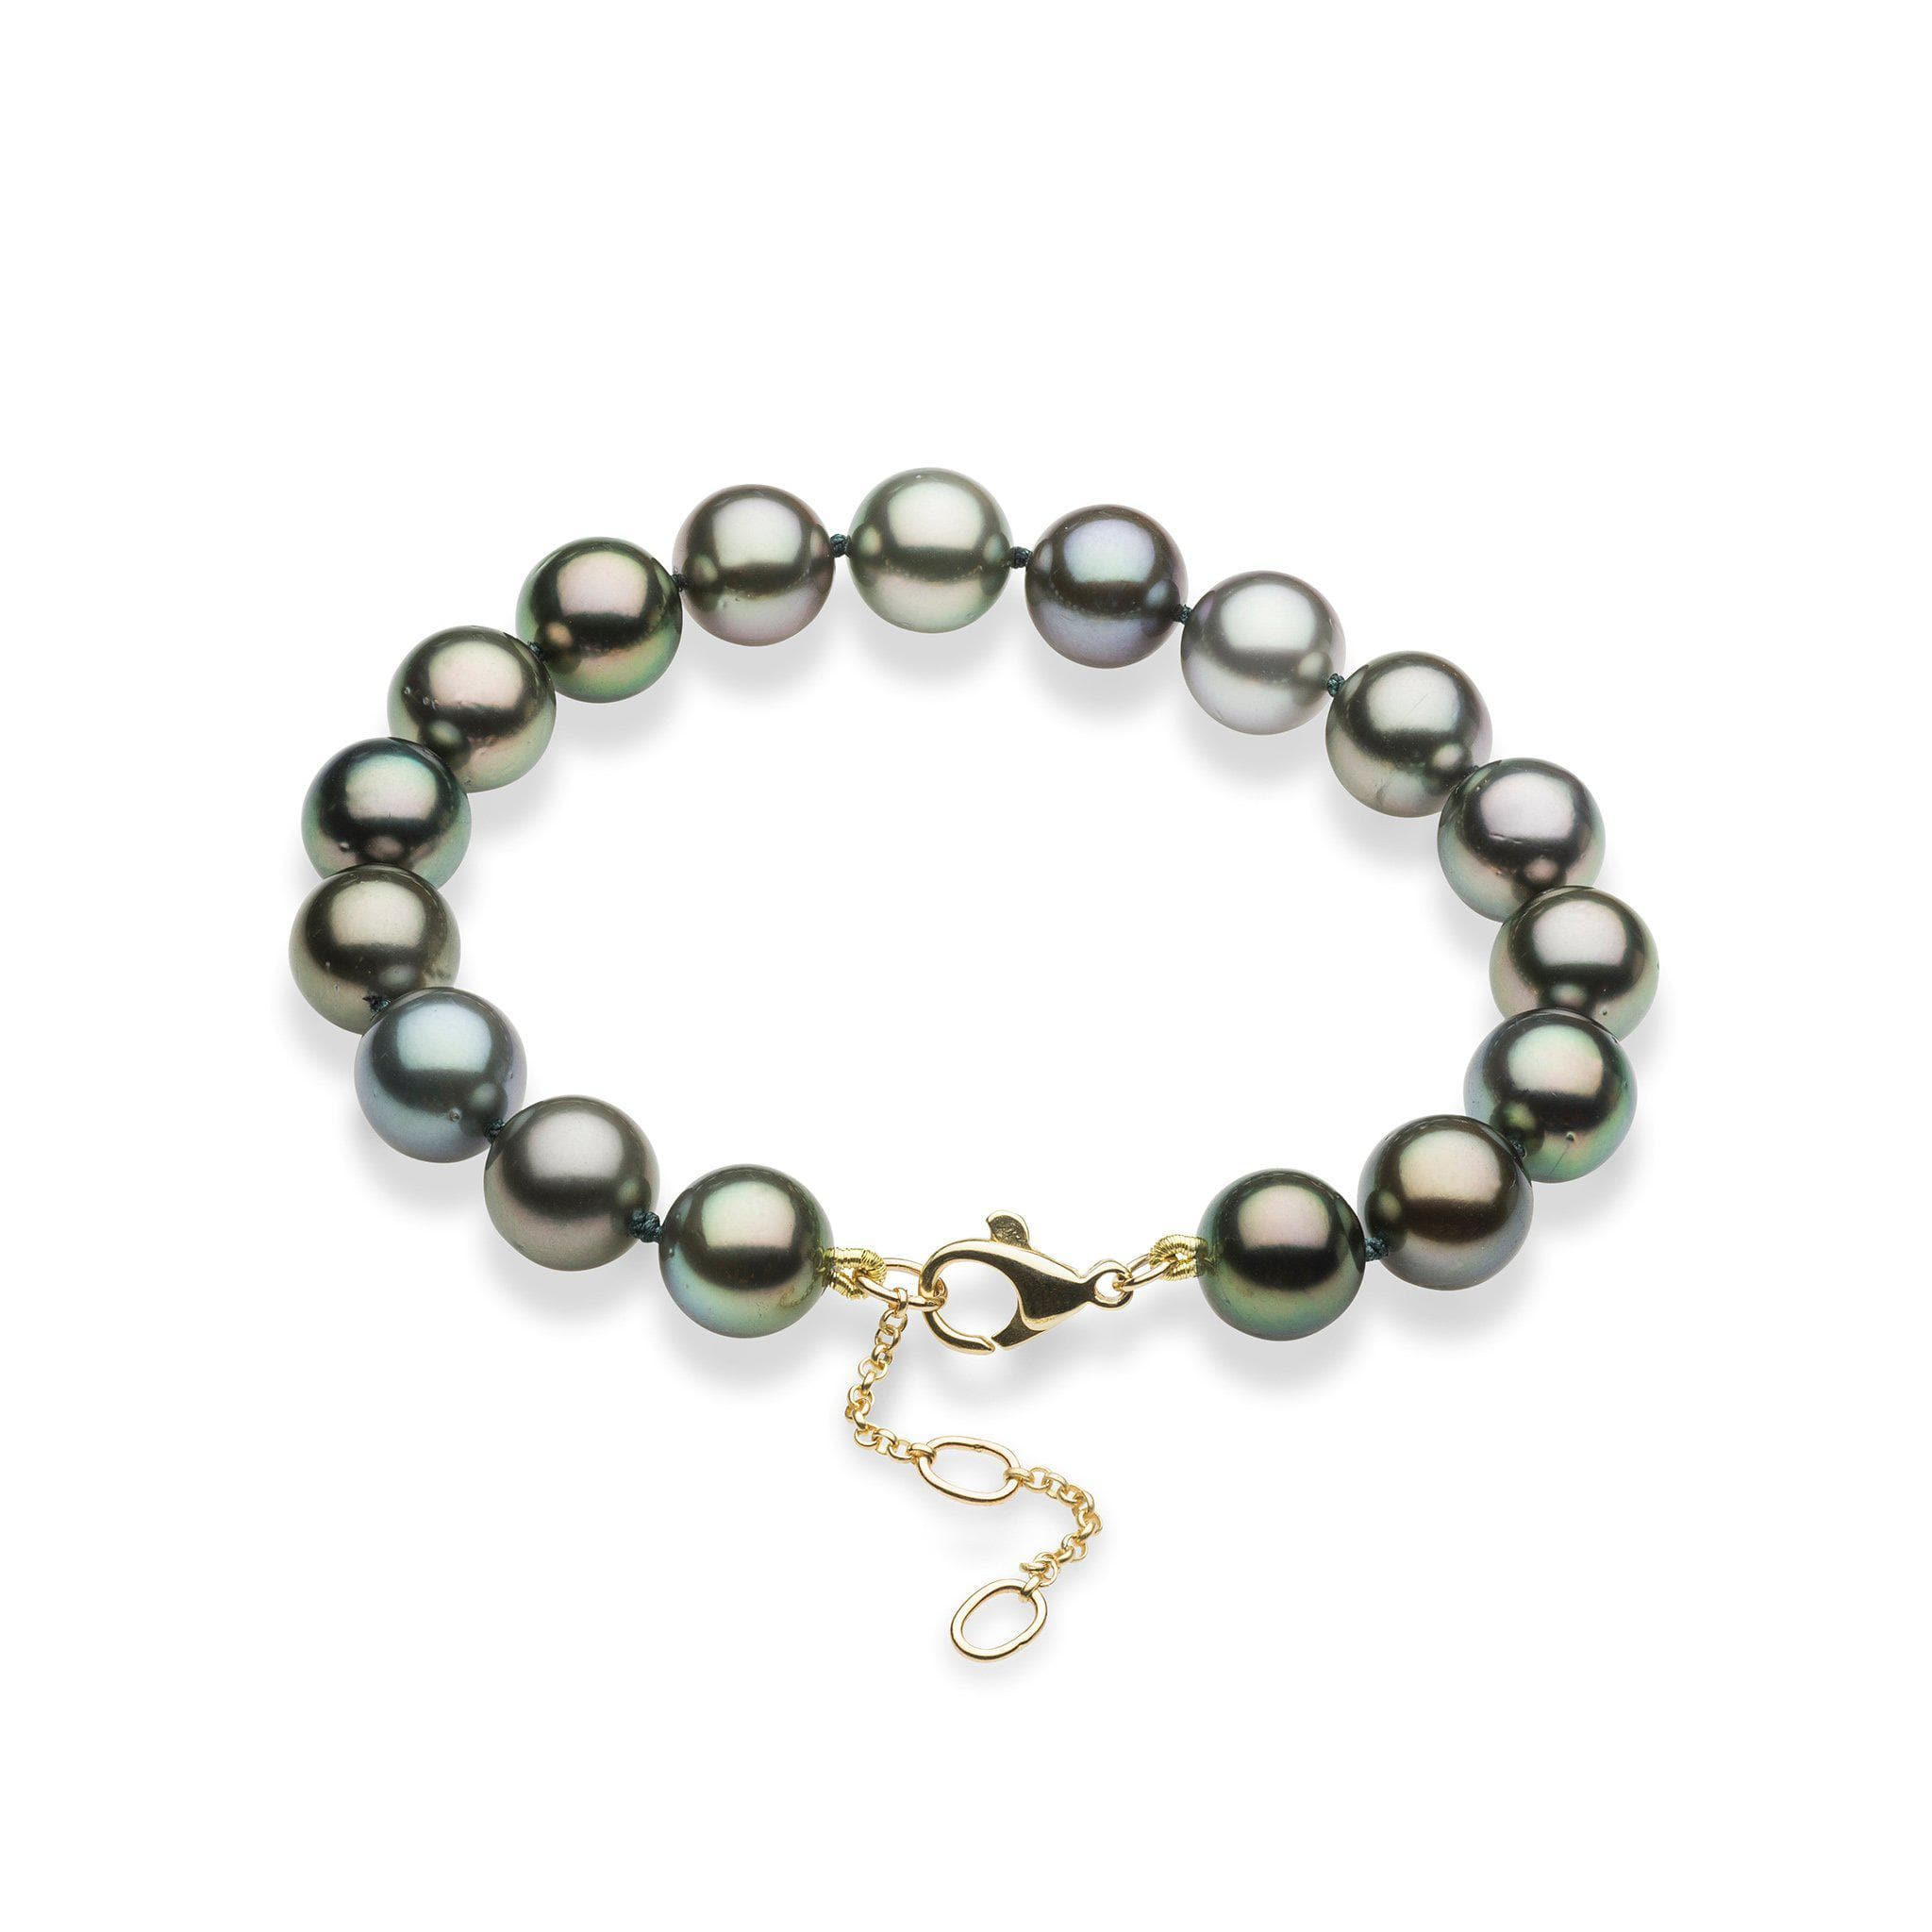 pearl black rose baroque pearls charm product collection bracelet gray and pacific atoll